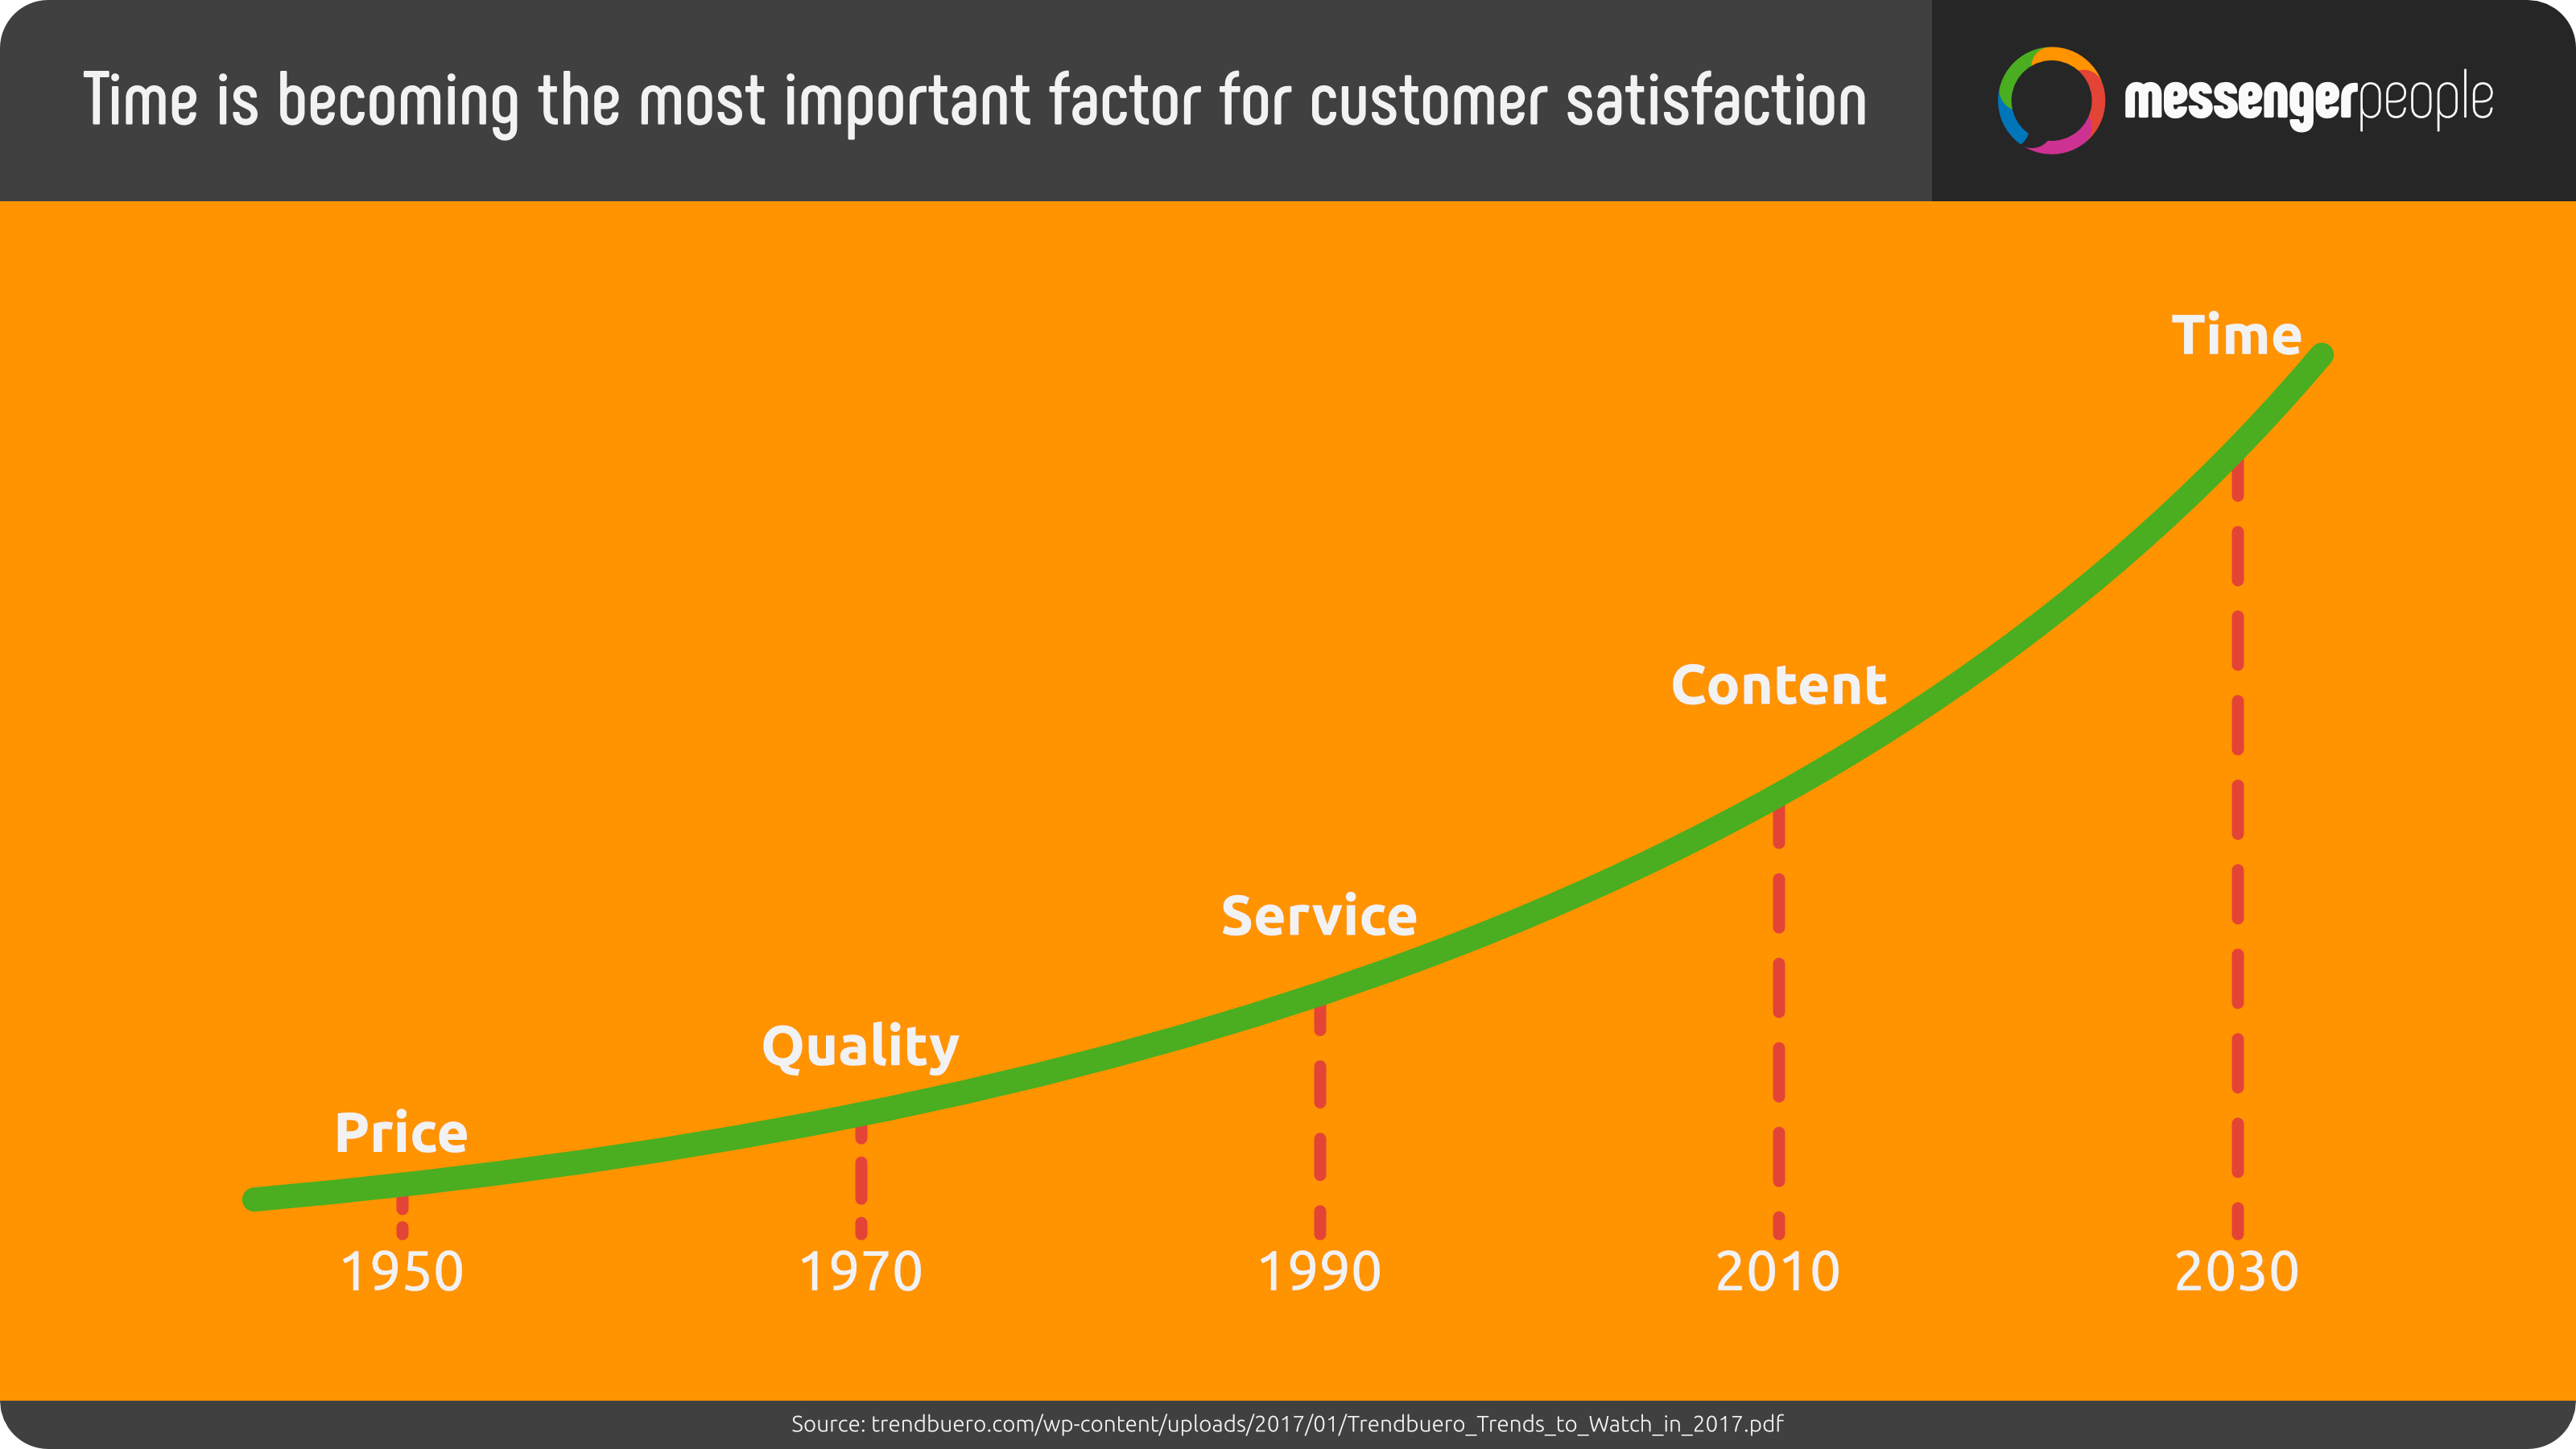 facts-time-factor-customer-satisfaction-en-stand-2018-08